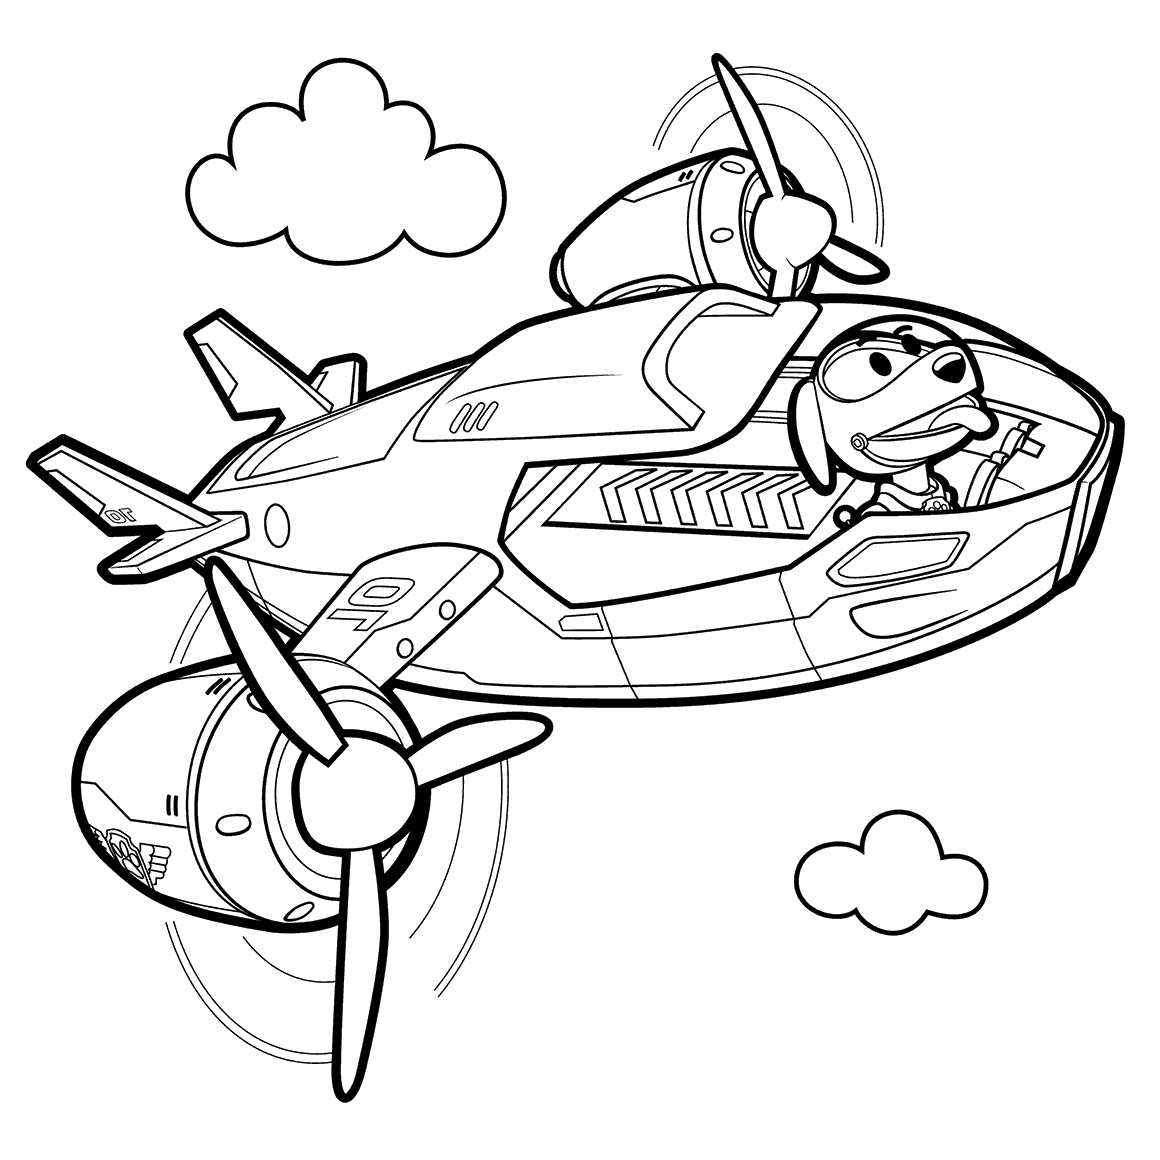 1160x1160 Robo Dog In Air Patroller Coloring Pages